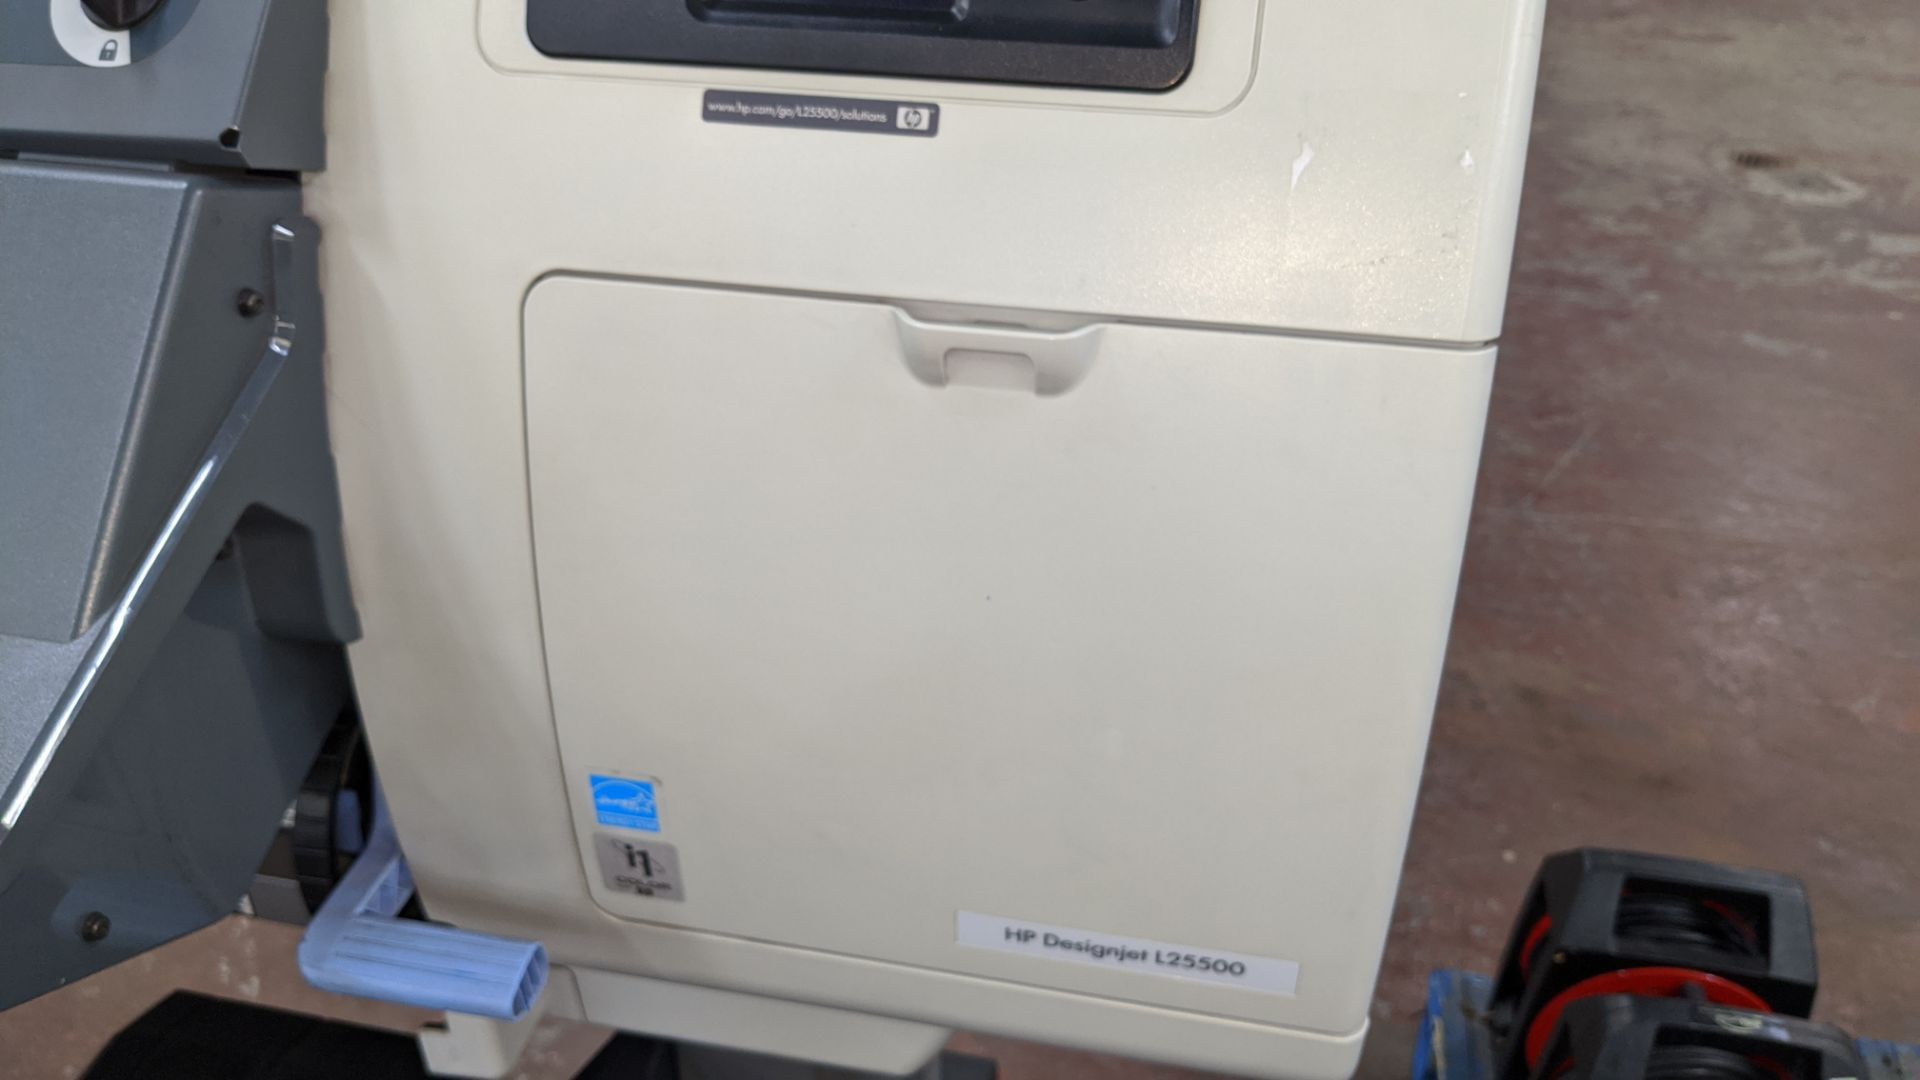 Lot 204 - HP DesignJet L25500 wide format printer, serial no. MY0482900B, product no. CH956A/CH956-64001